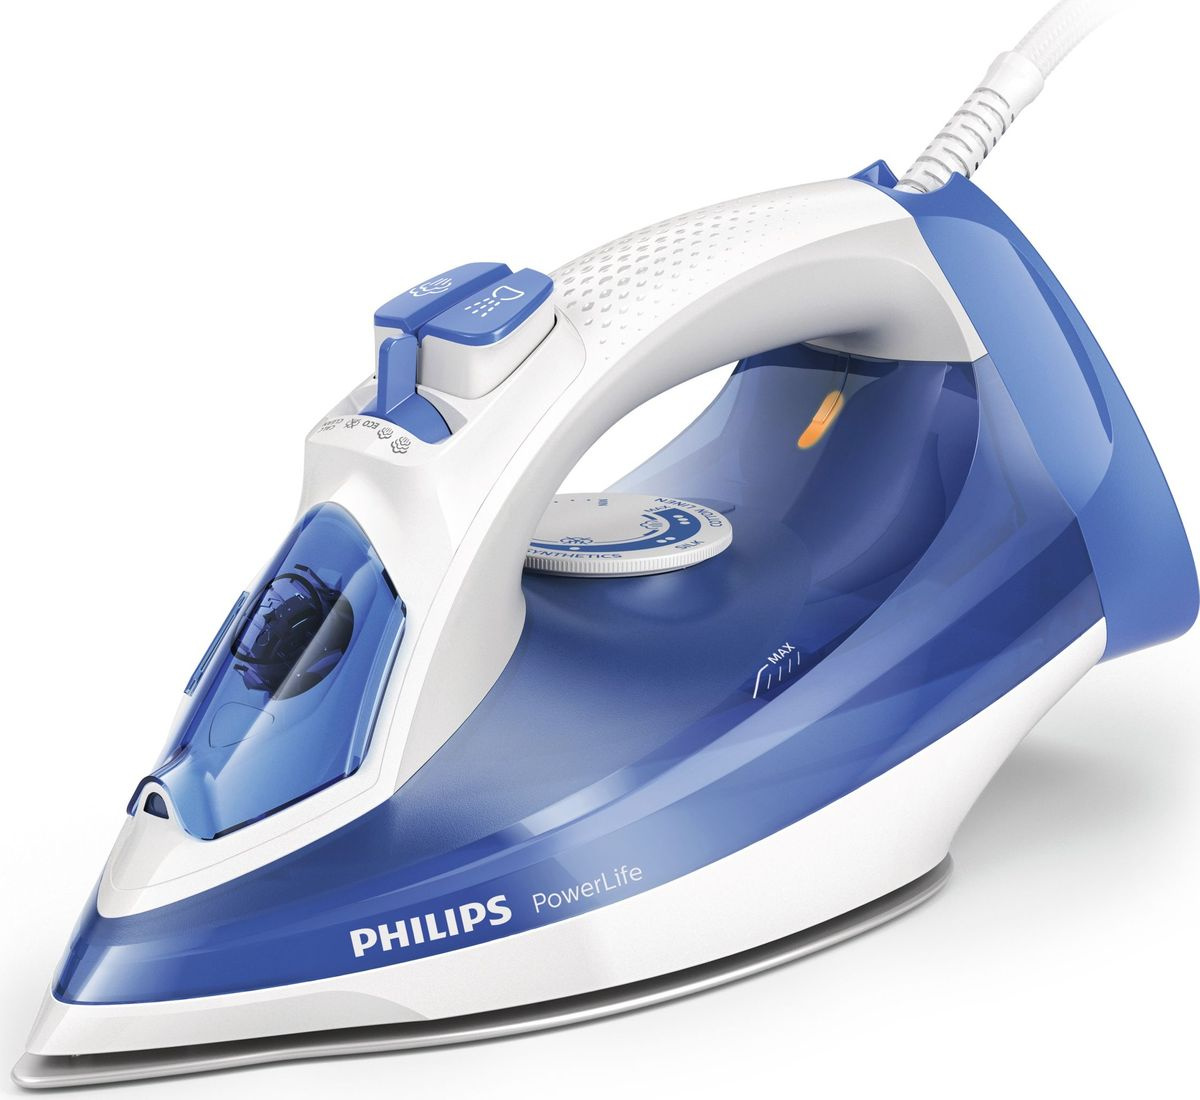 Утюг Philips GC2990/20 PowerLife, White Blue #1